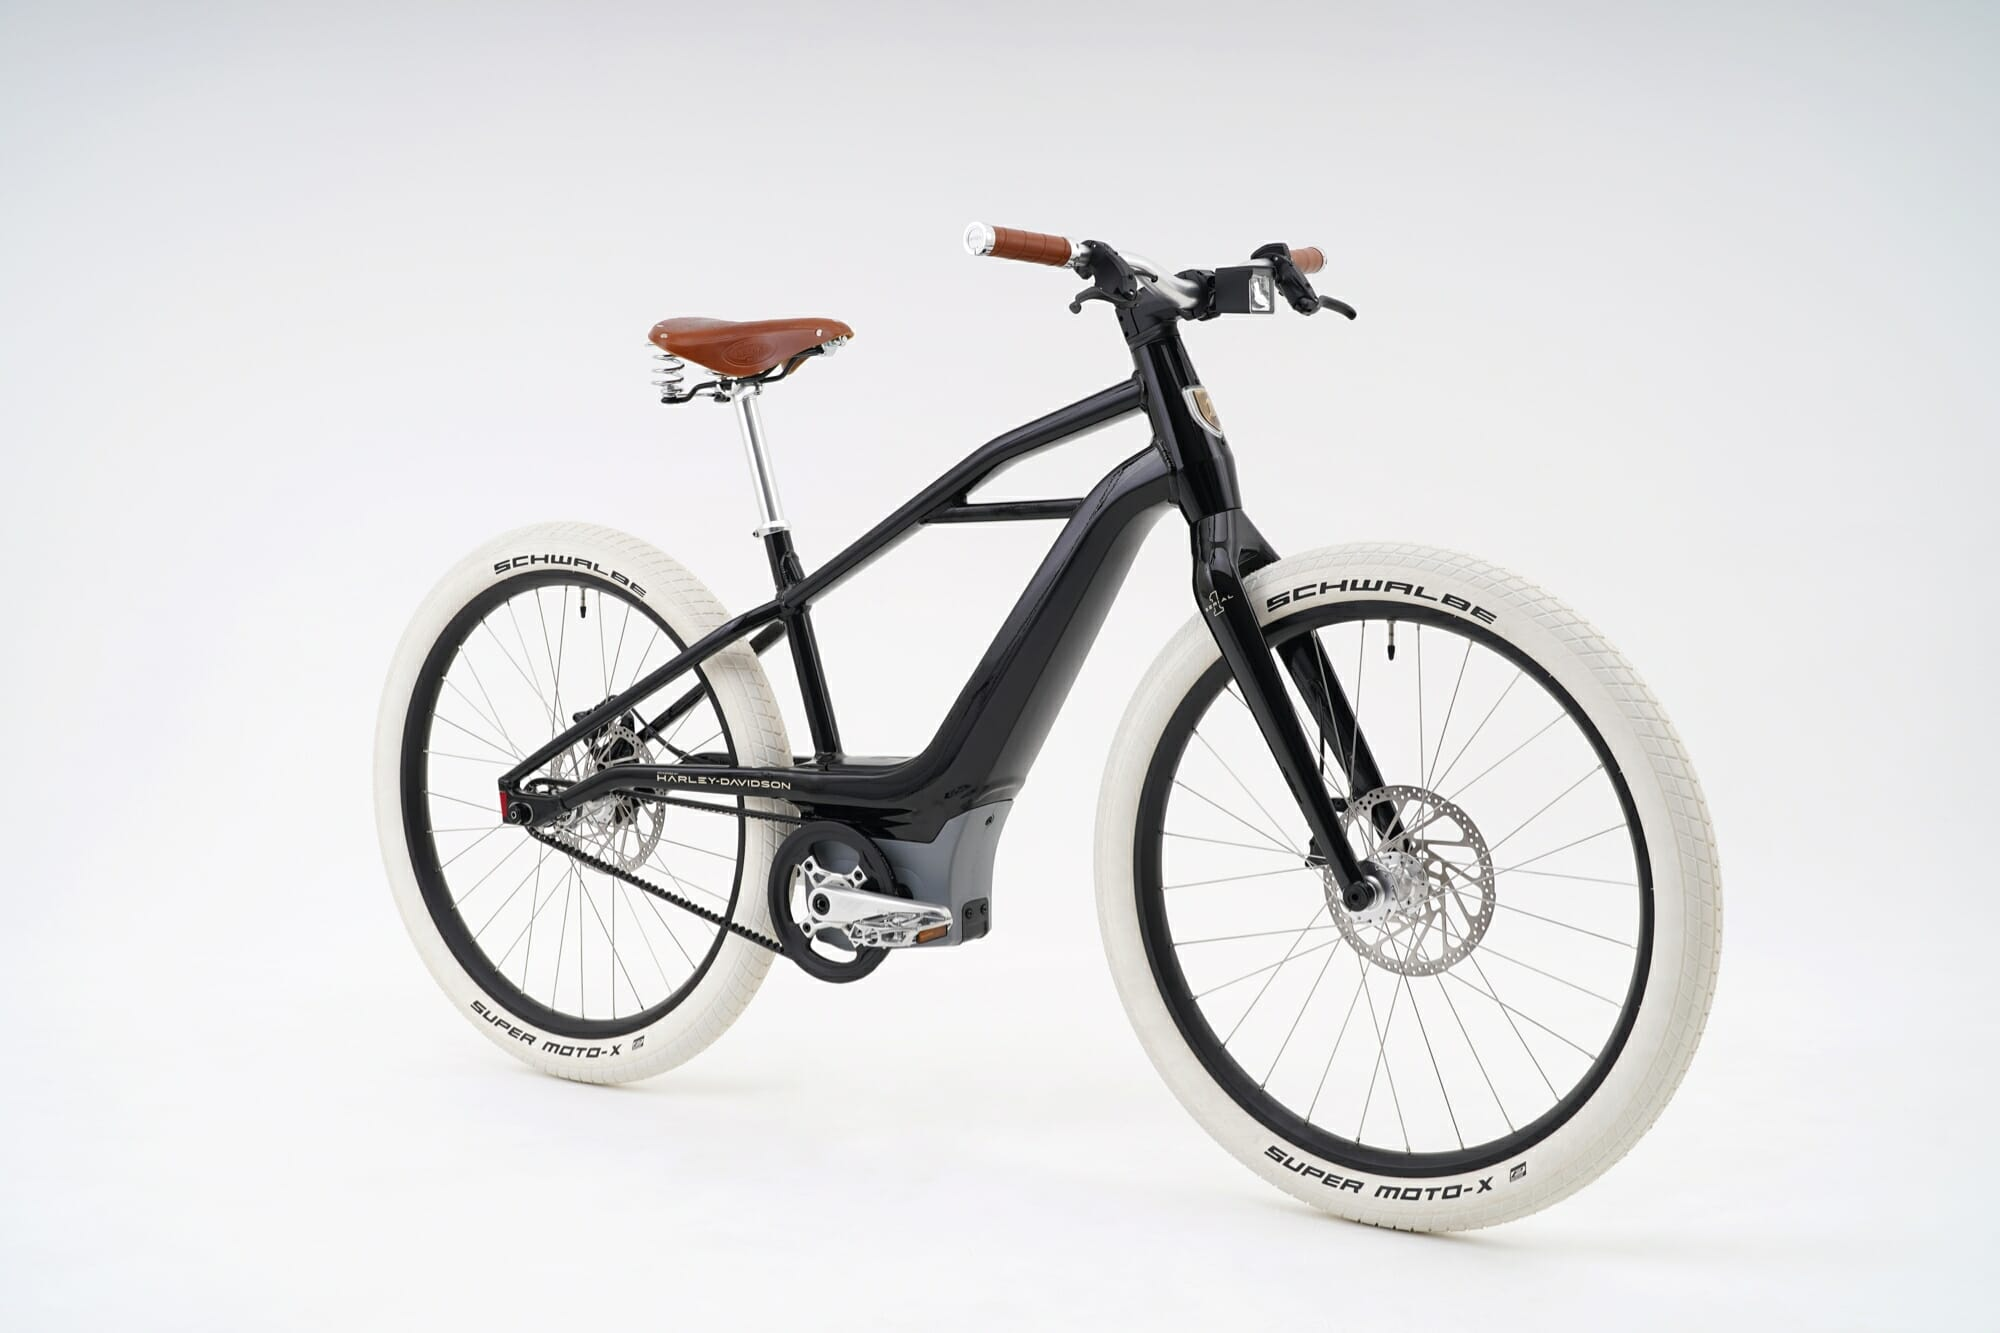 Can't Afford An Easy Rider? This Harley-Davidson Ebike Could Be A Tempting Alternative